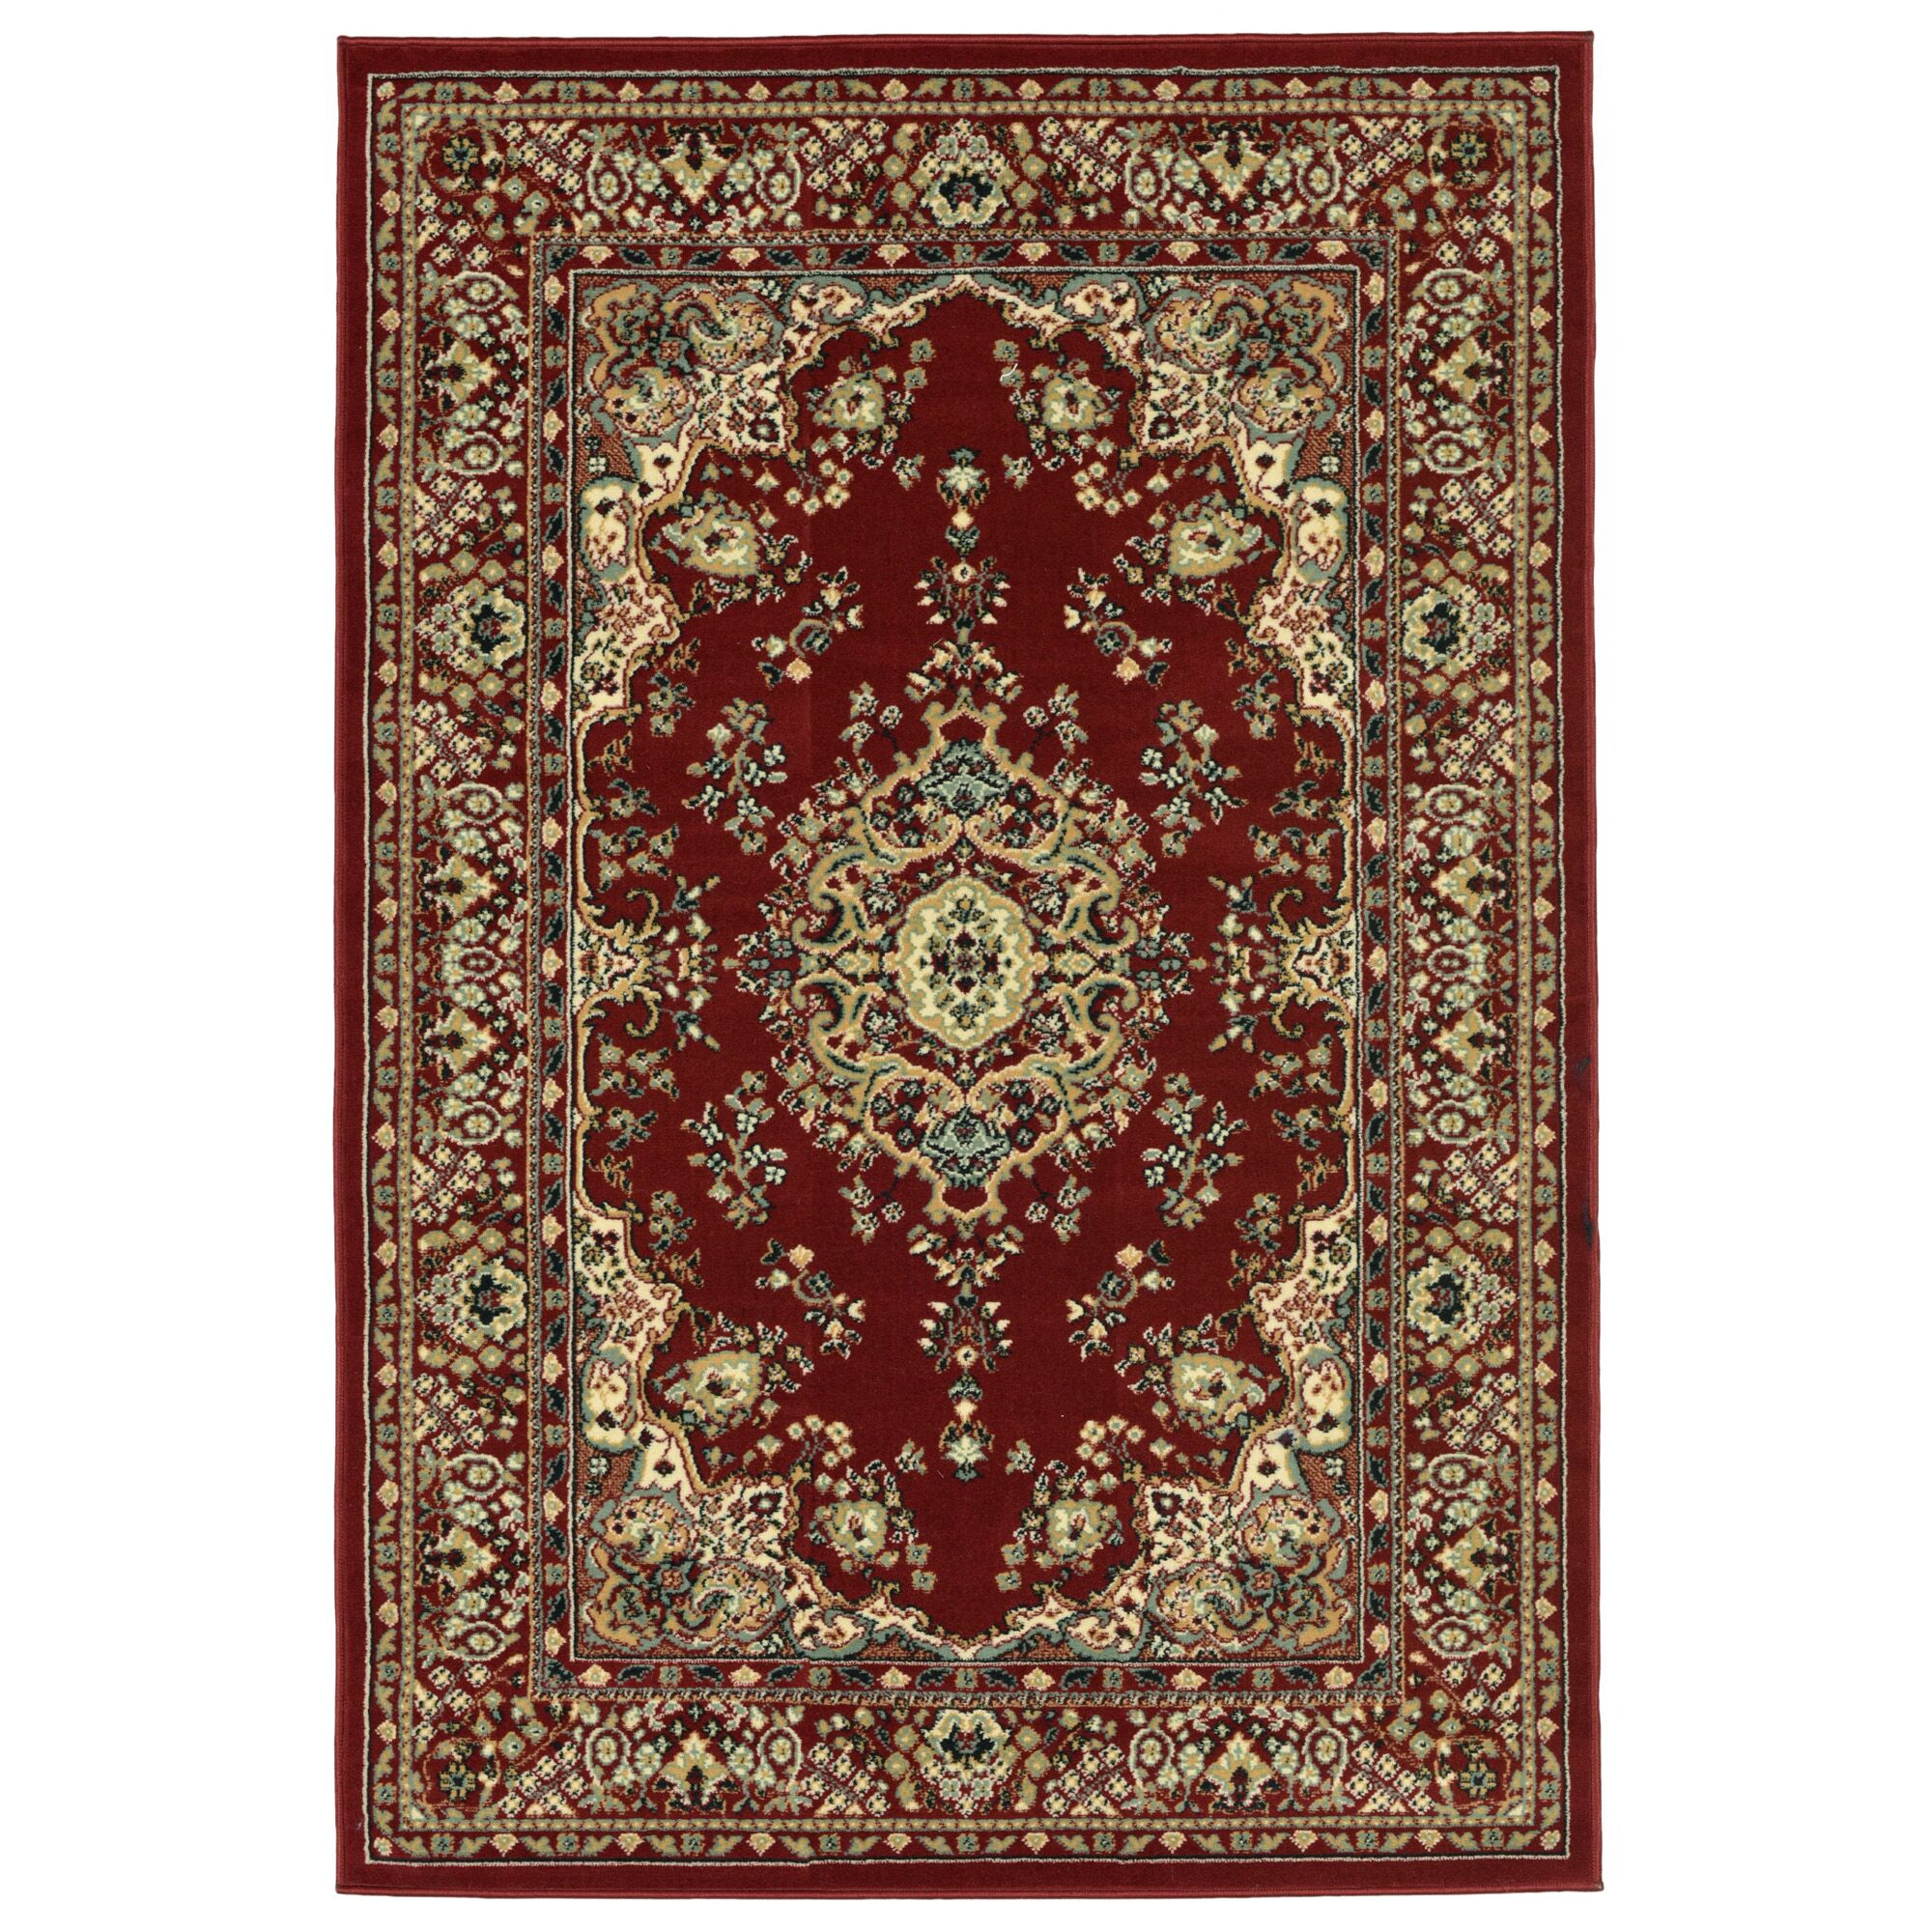 Arias Kermin Red Area Rug Rug Size: 7'6